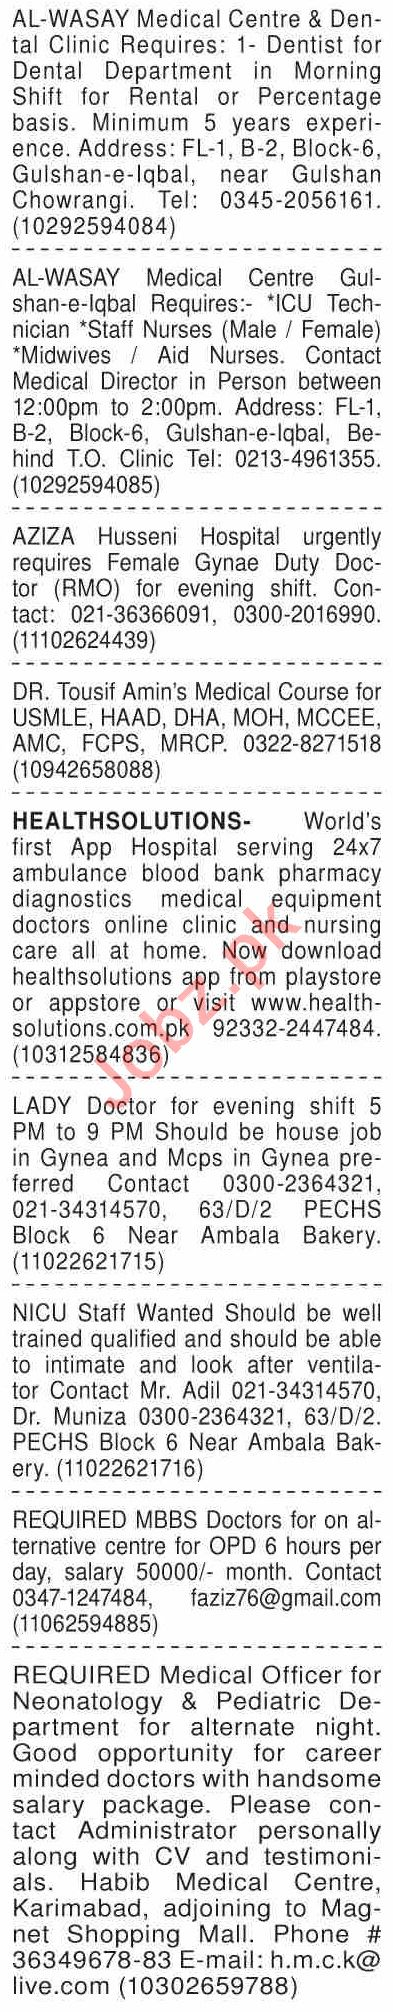 Dawn Sunday Classified Ads 27 Dec 2020 for Medical Staff